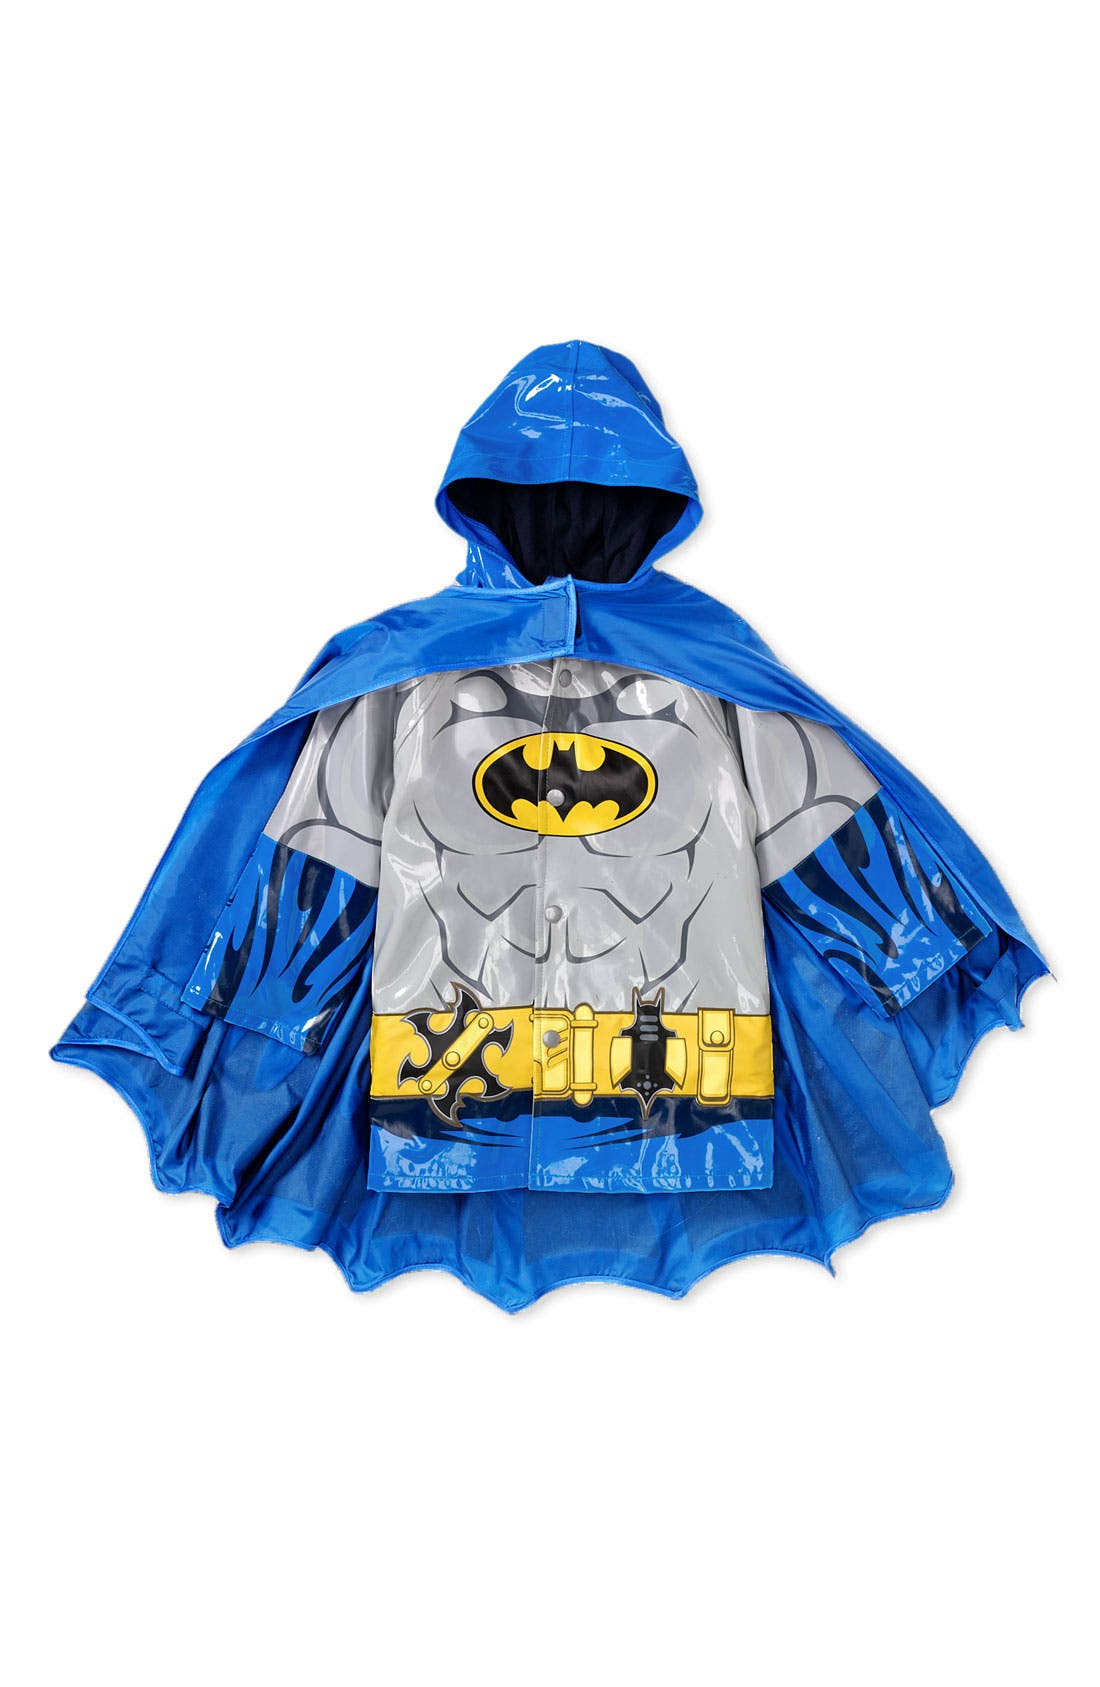 Alternate Image 1 Selected - Western Chief 'Batman' Raincoat (Toddler Boys & Little Boys)